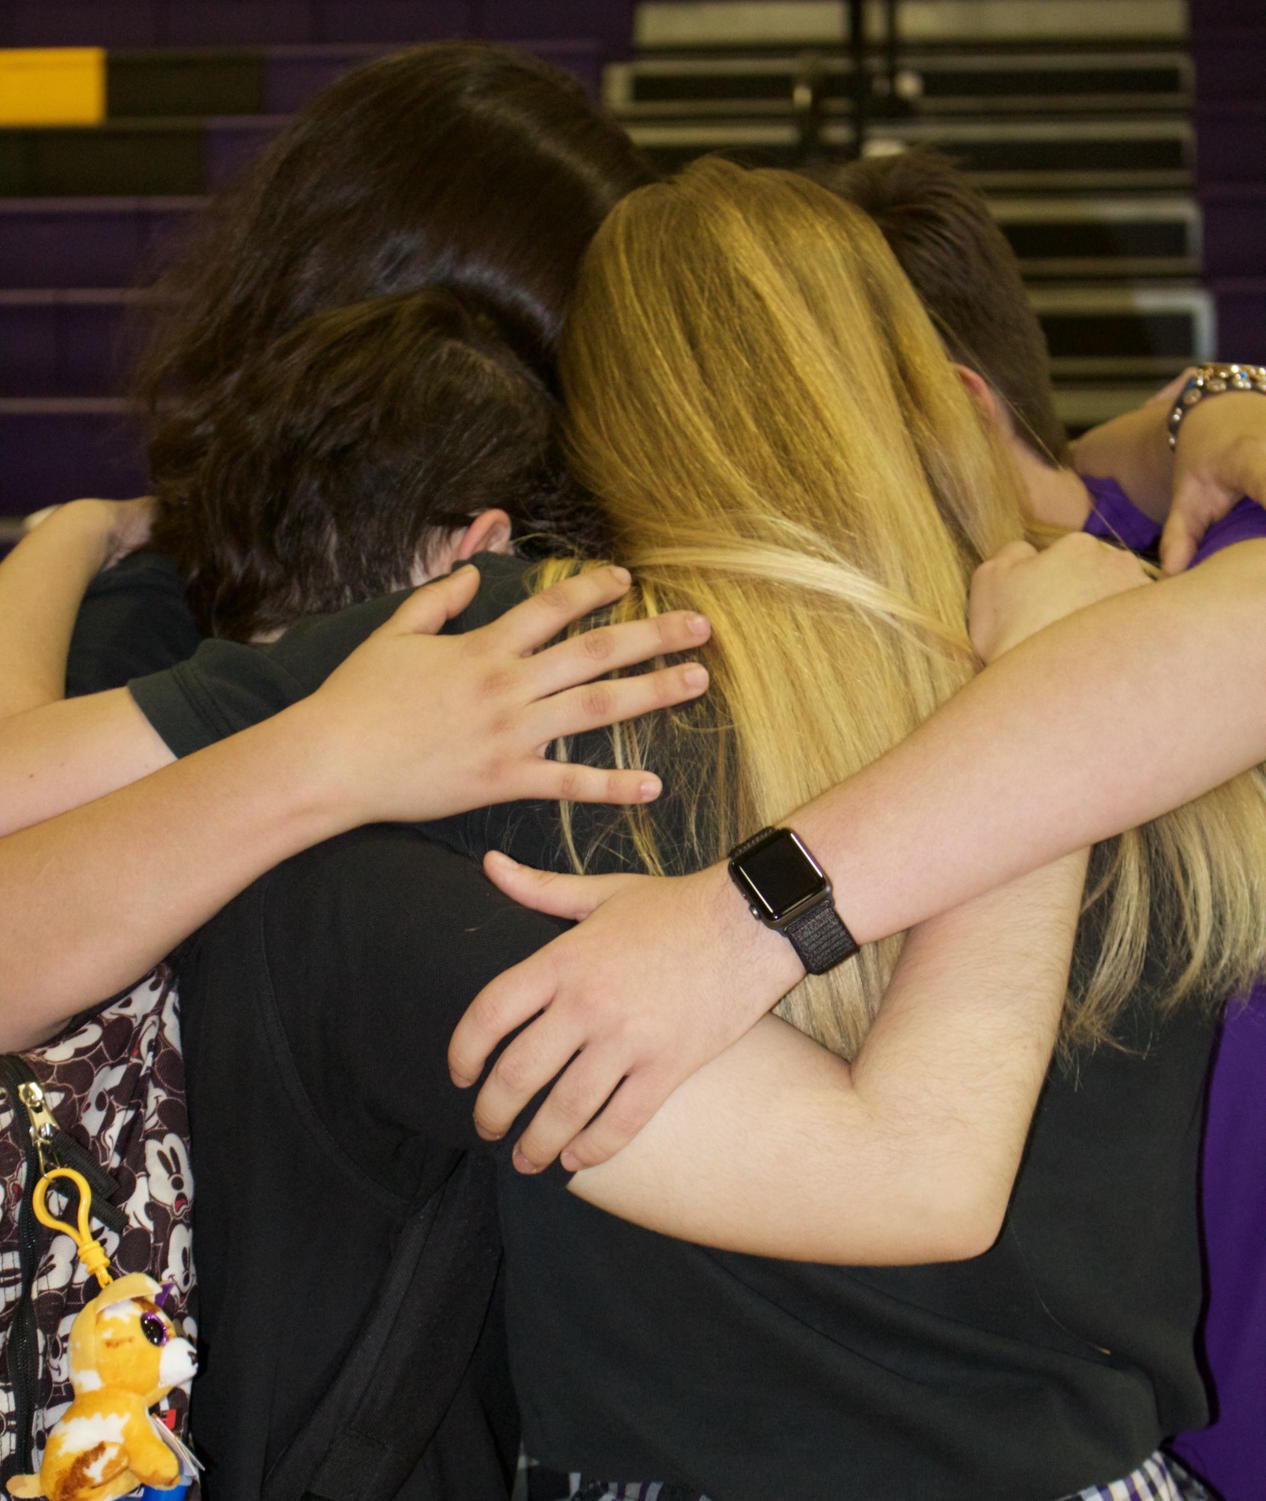 NDP students come together to support each other during hard times. Photo by Kimberly Haub.